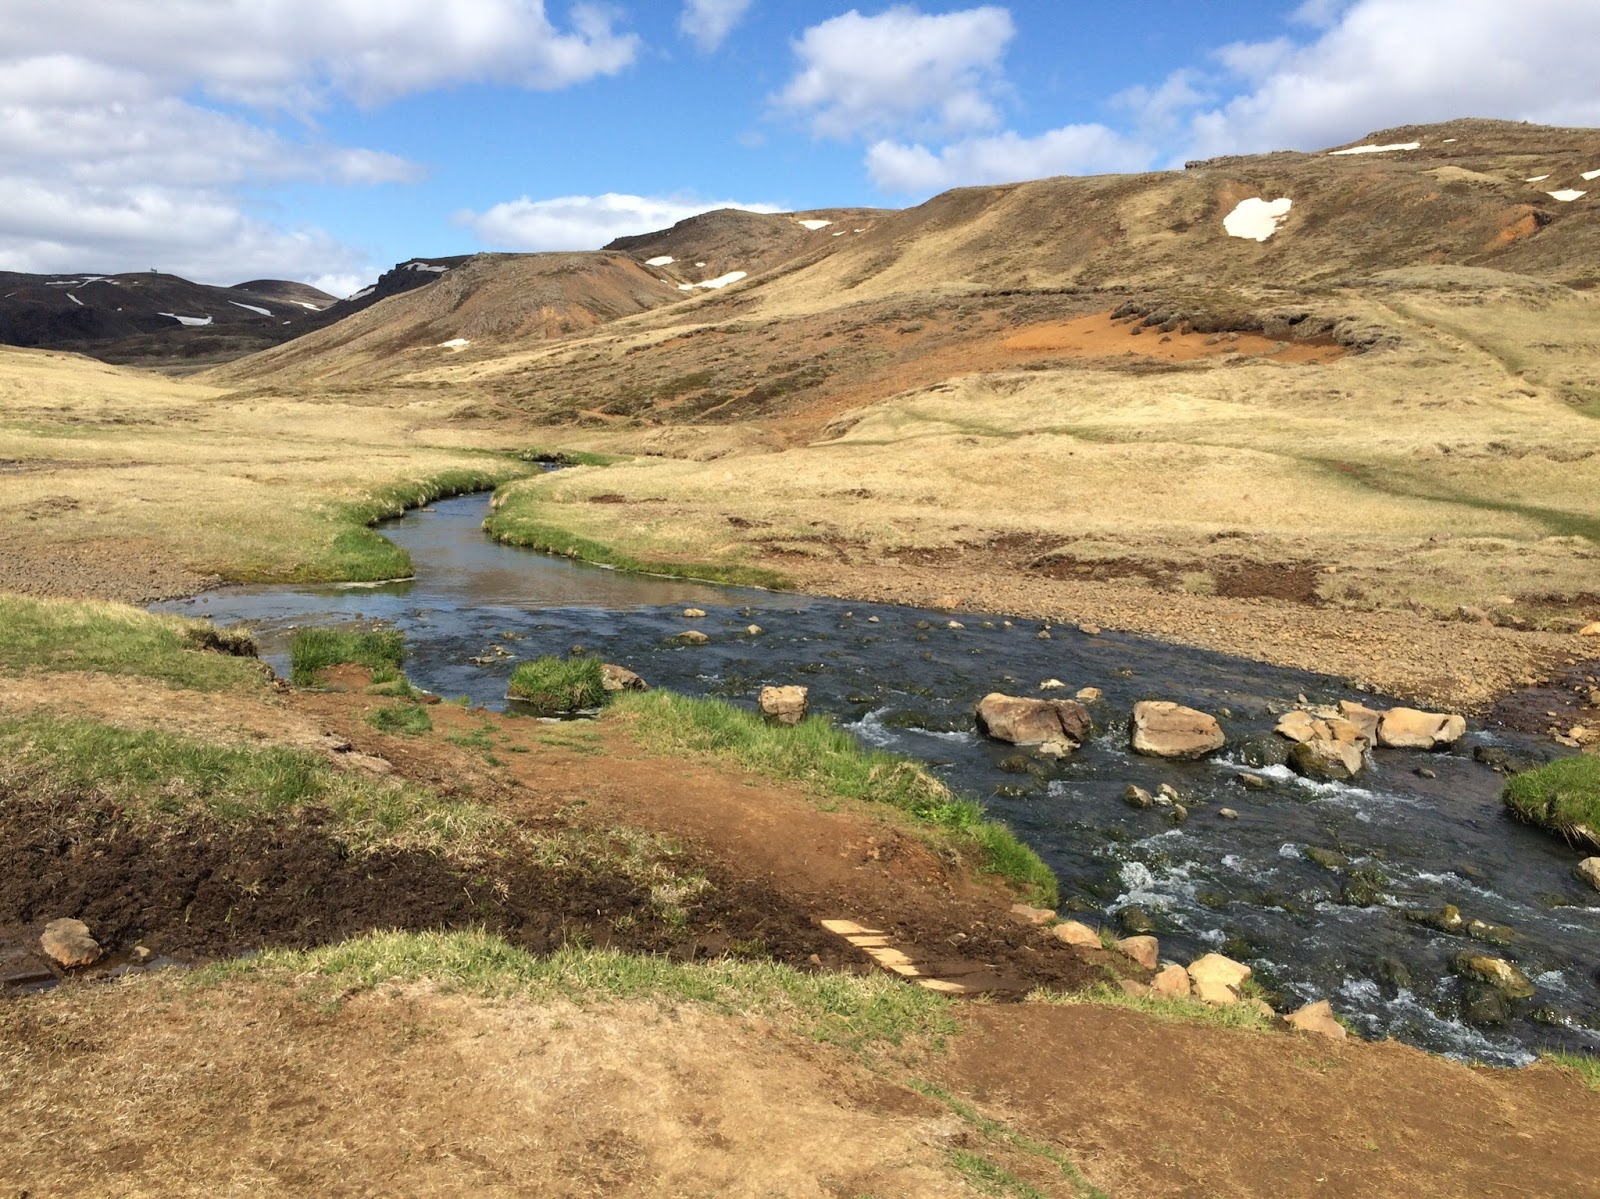 Hiking to the hot springs in Hveragerdi, Iceland